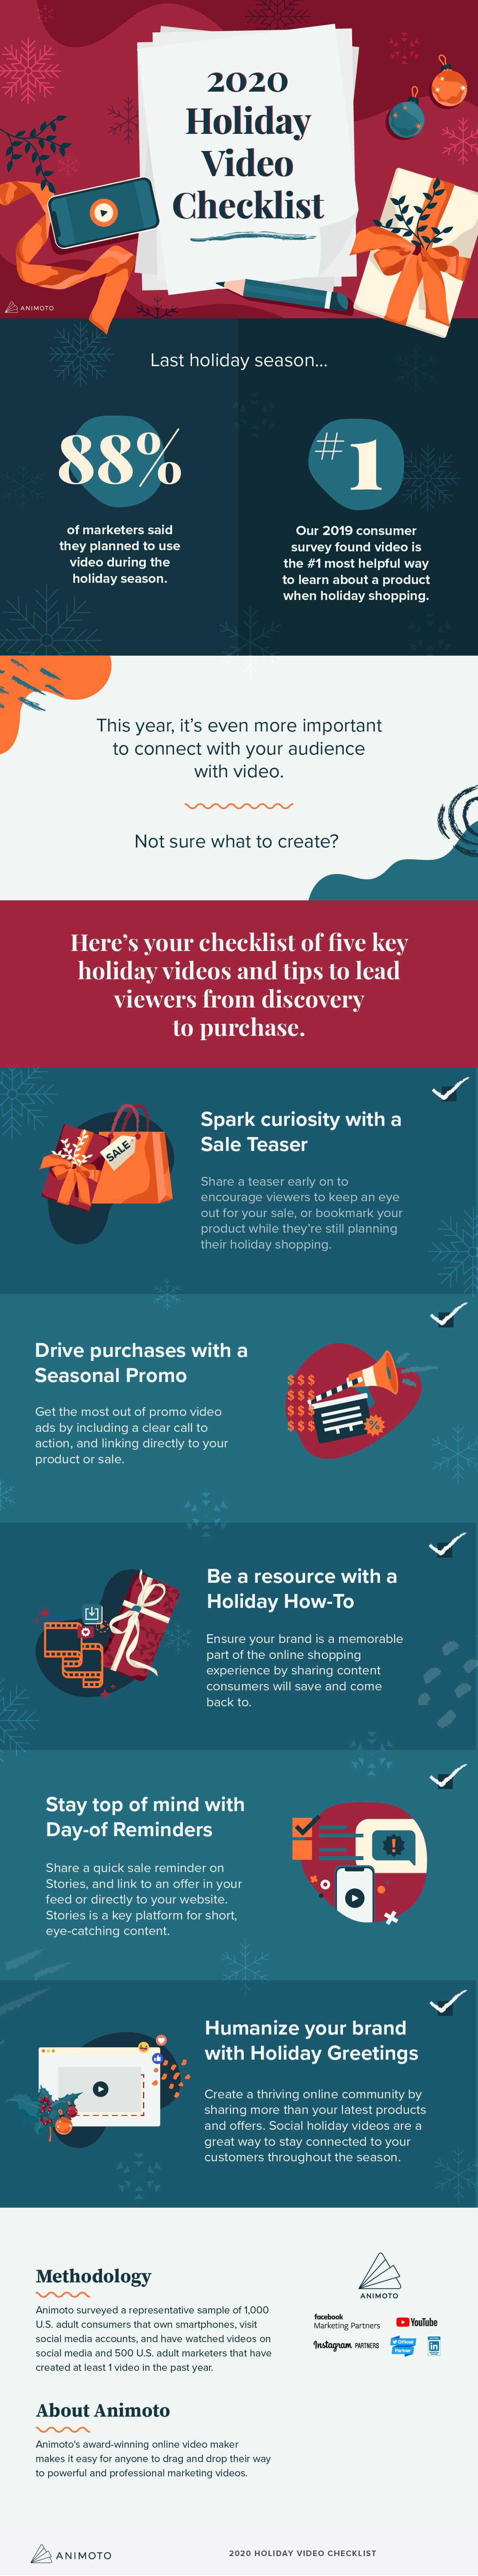 2020-Holiday-Video-Checklist full-infographic